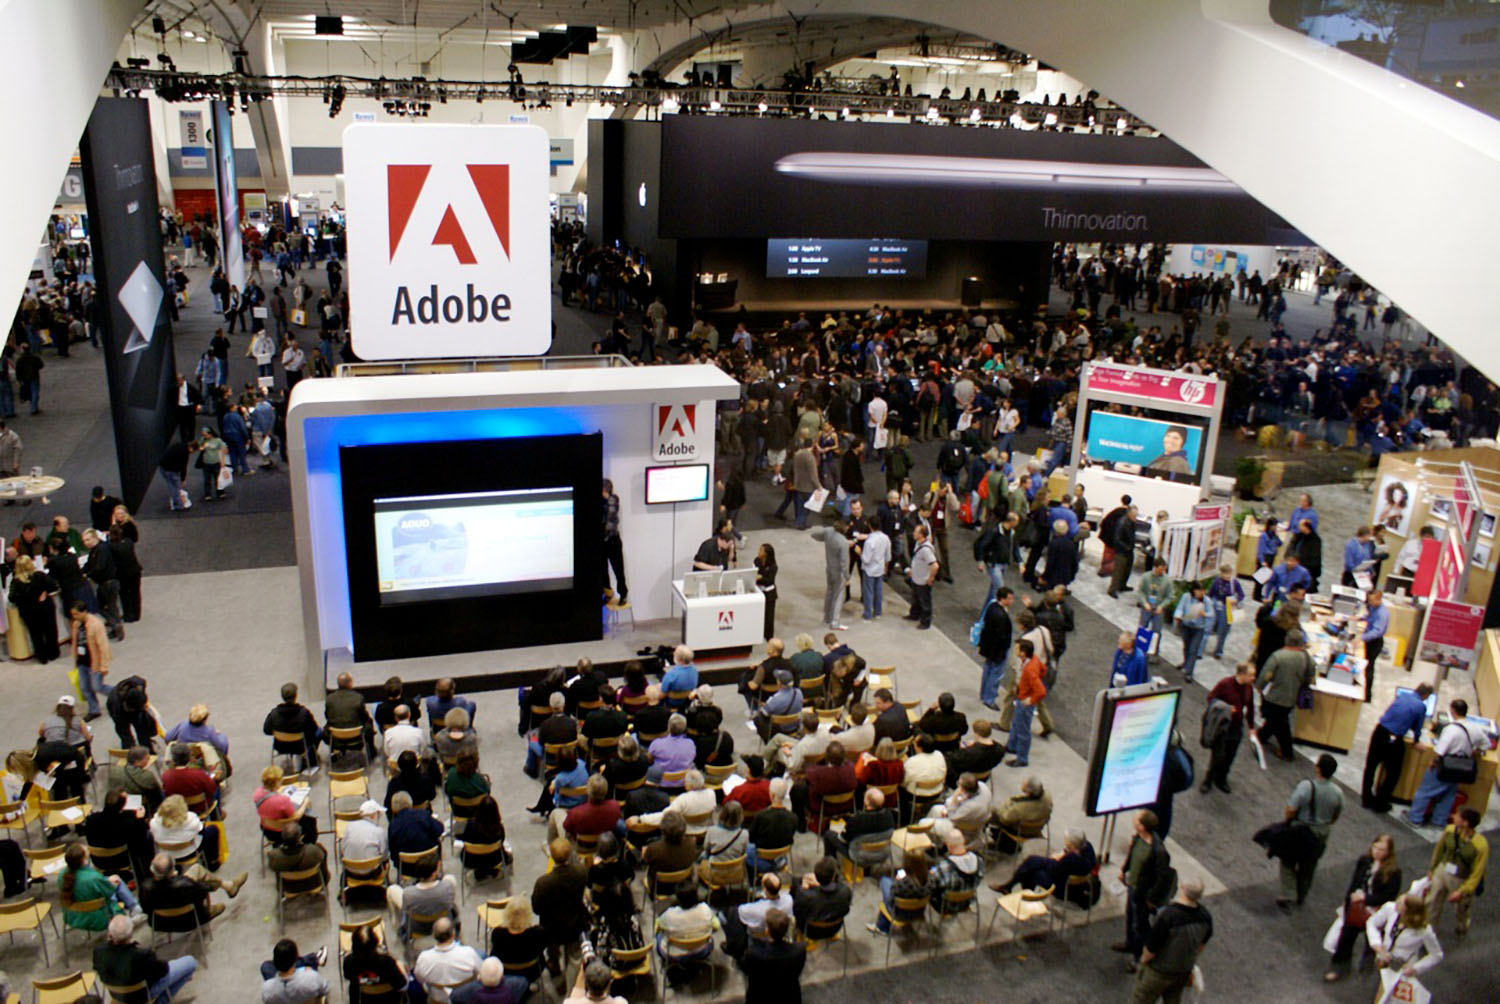 Image: Adobe booth at MacWorld show in San Francisco.